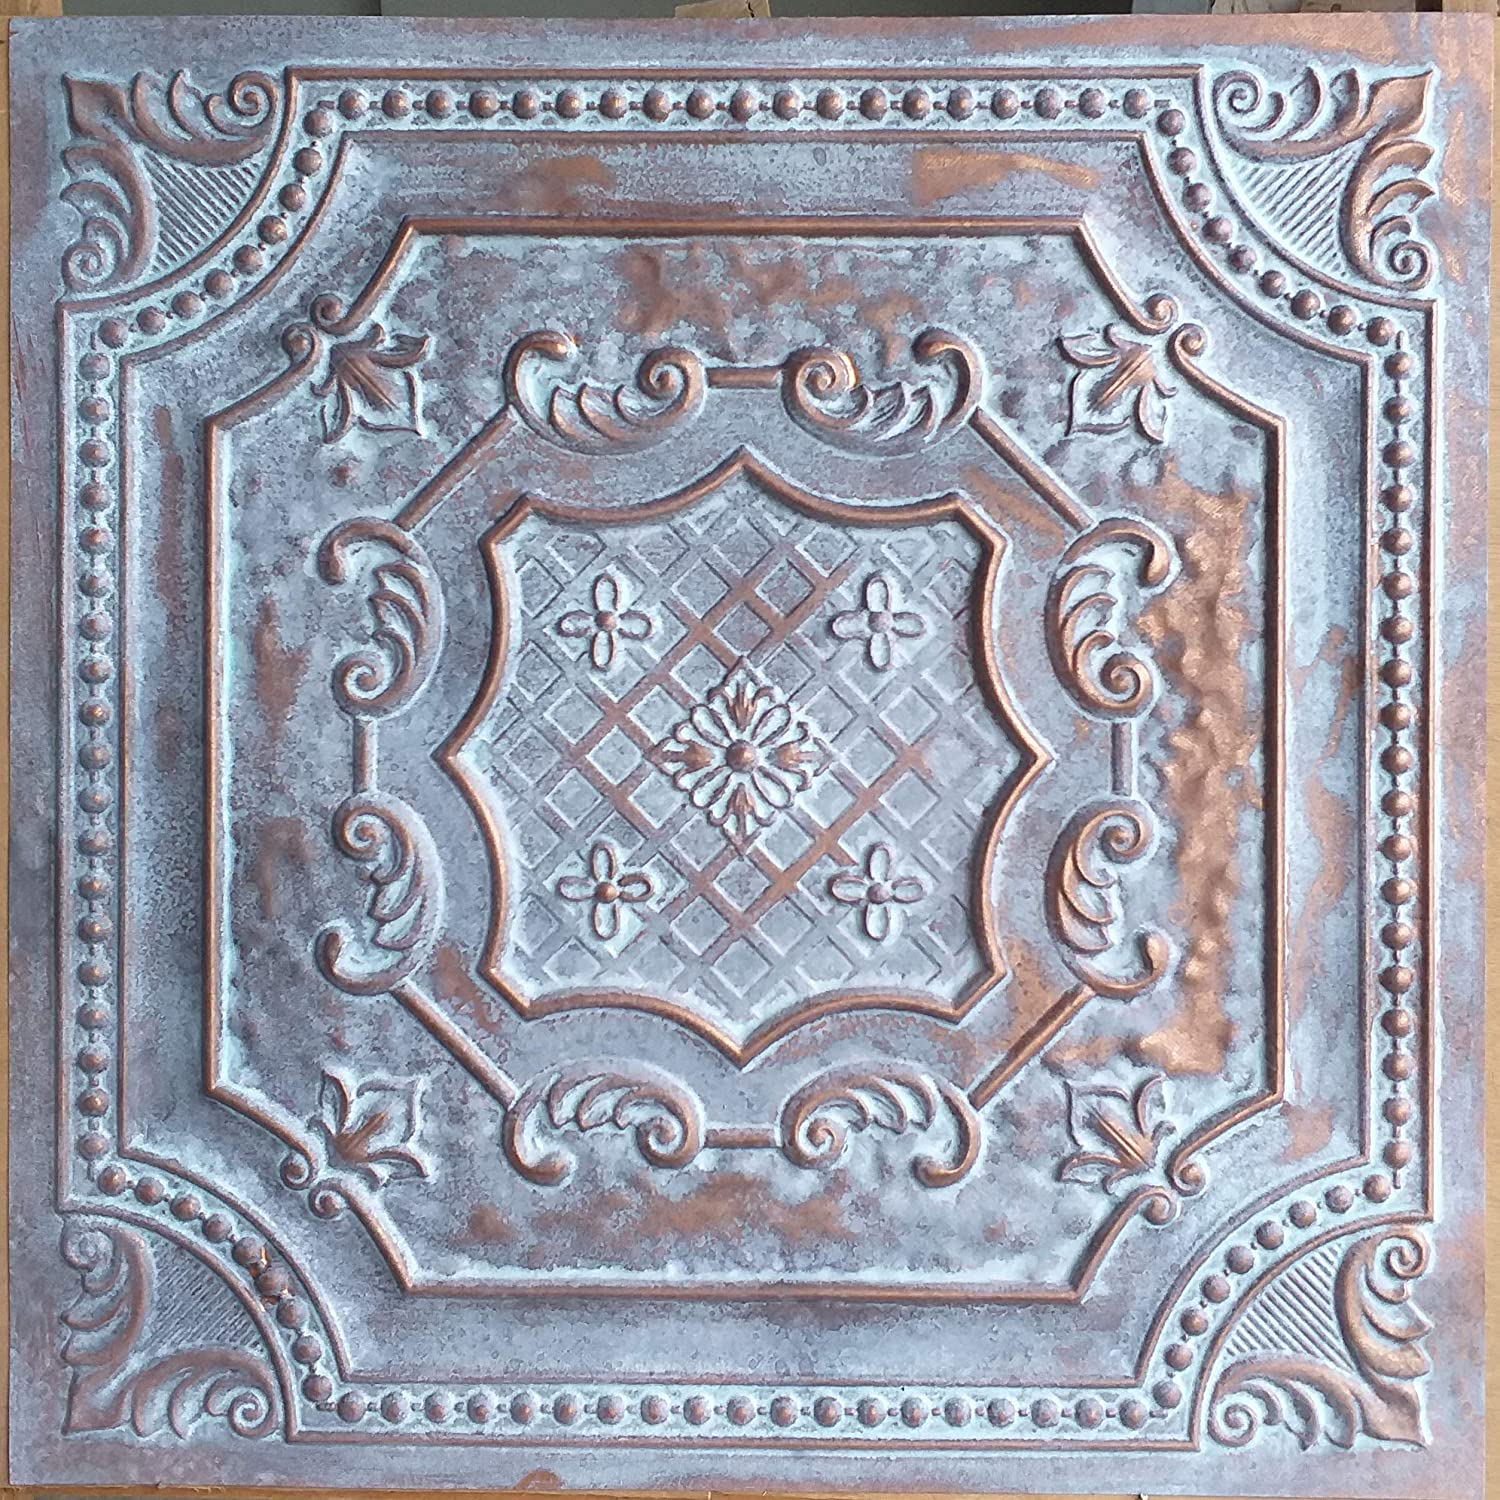 Drop in Ceiling Tile Easy to Install Suitable for Any Commercial or Residential Spaces. Pack of 10 TD04 Weathered Copper Faux Tin Glue up Great for DIY Projects Covers 40 sq.ft